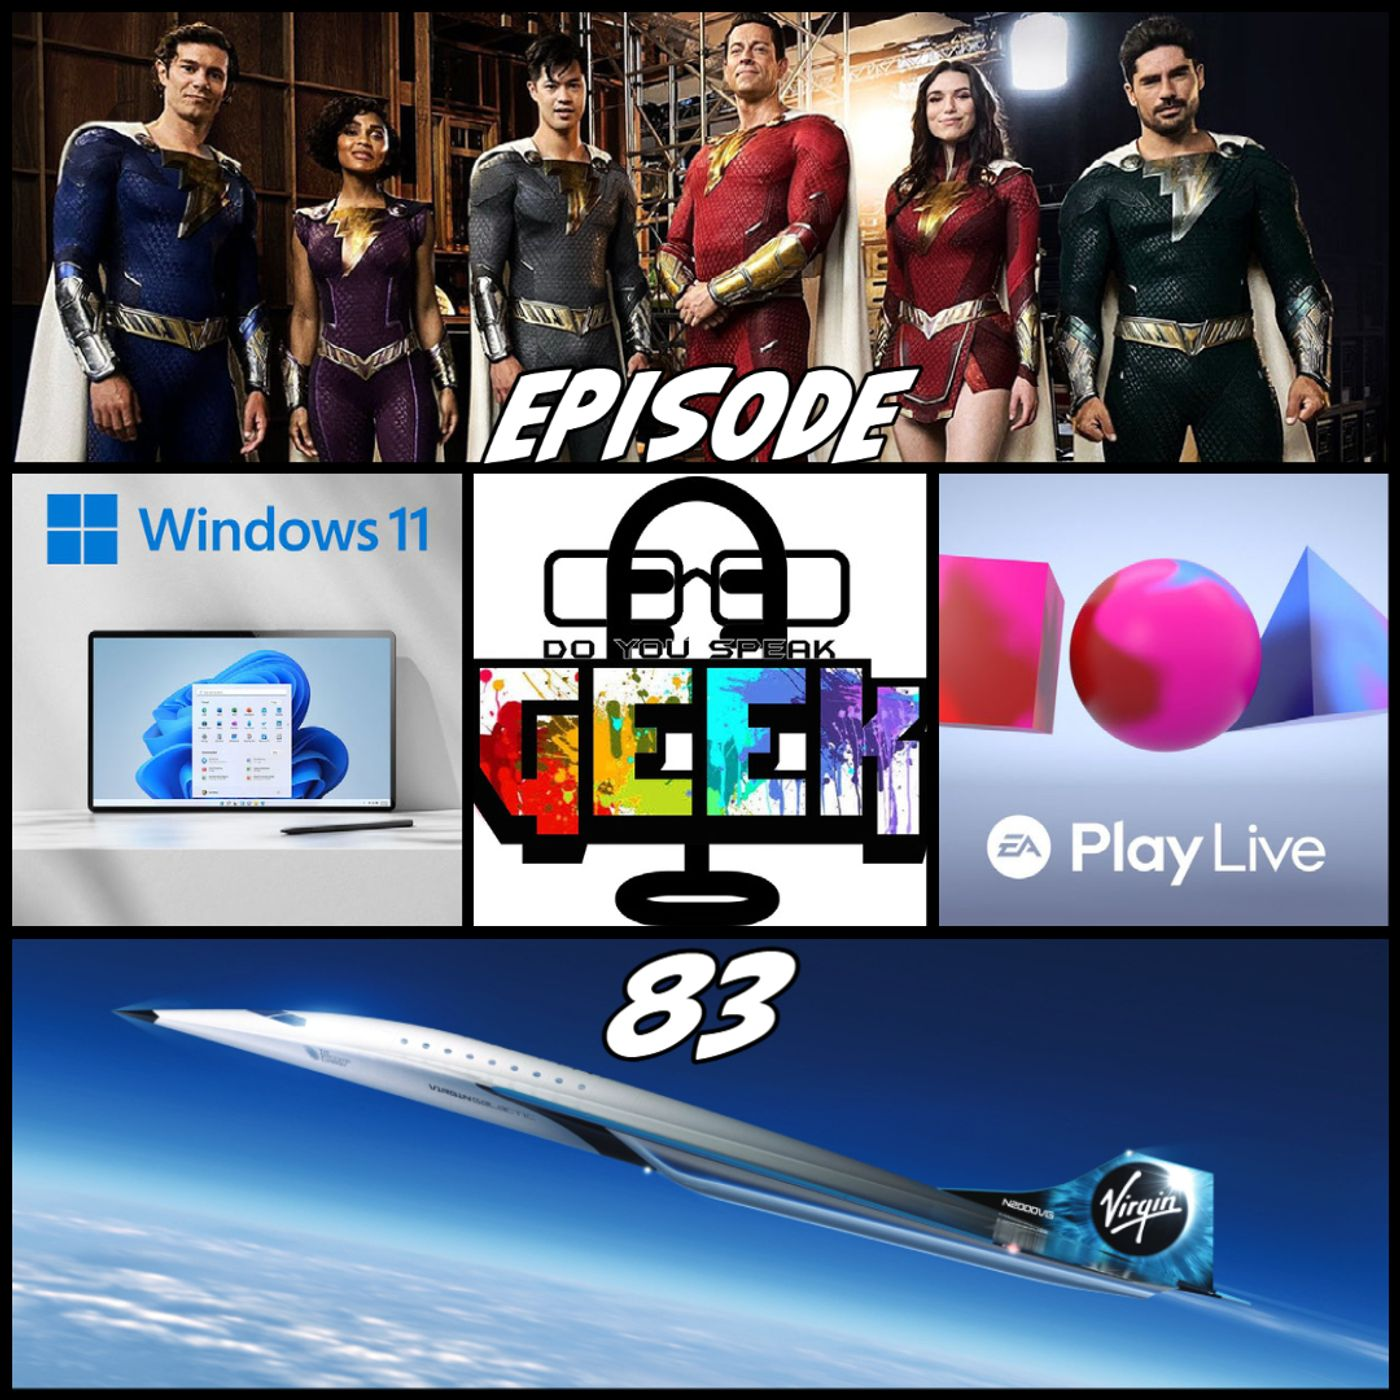 Episode 83 (Shazam 2 Costumes, EA Play Live, Virgin Galactic, Windows 11, and more)